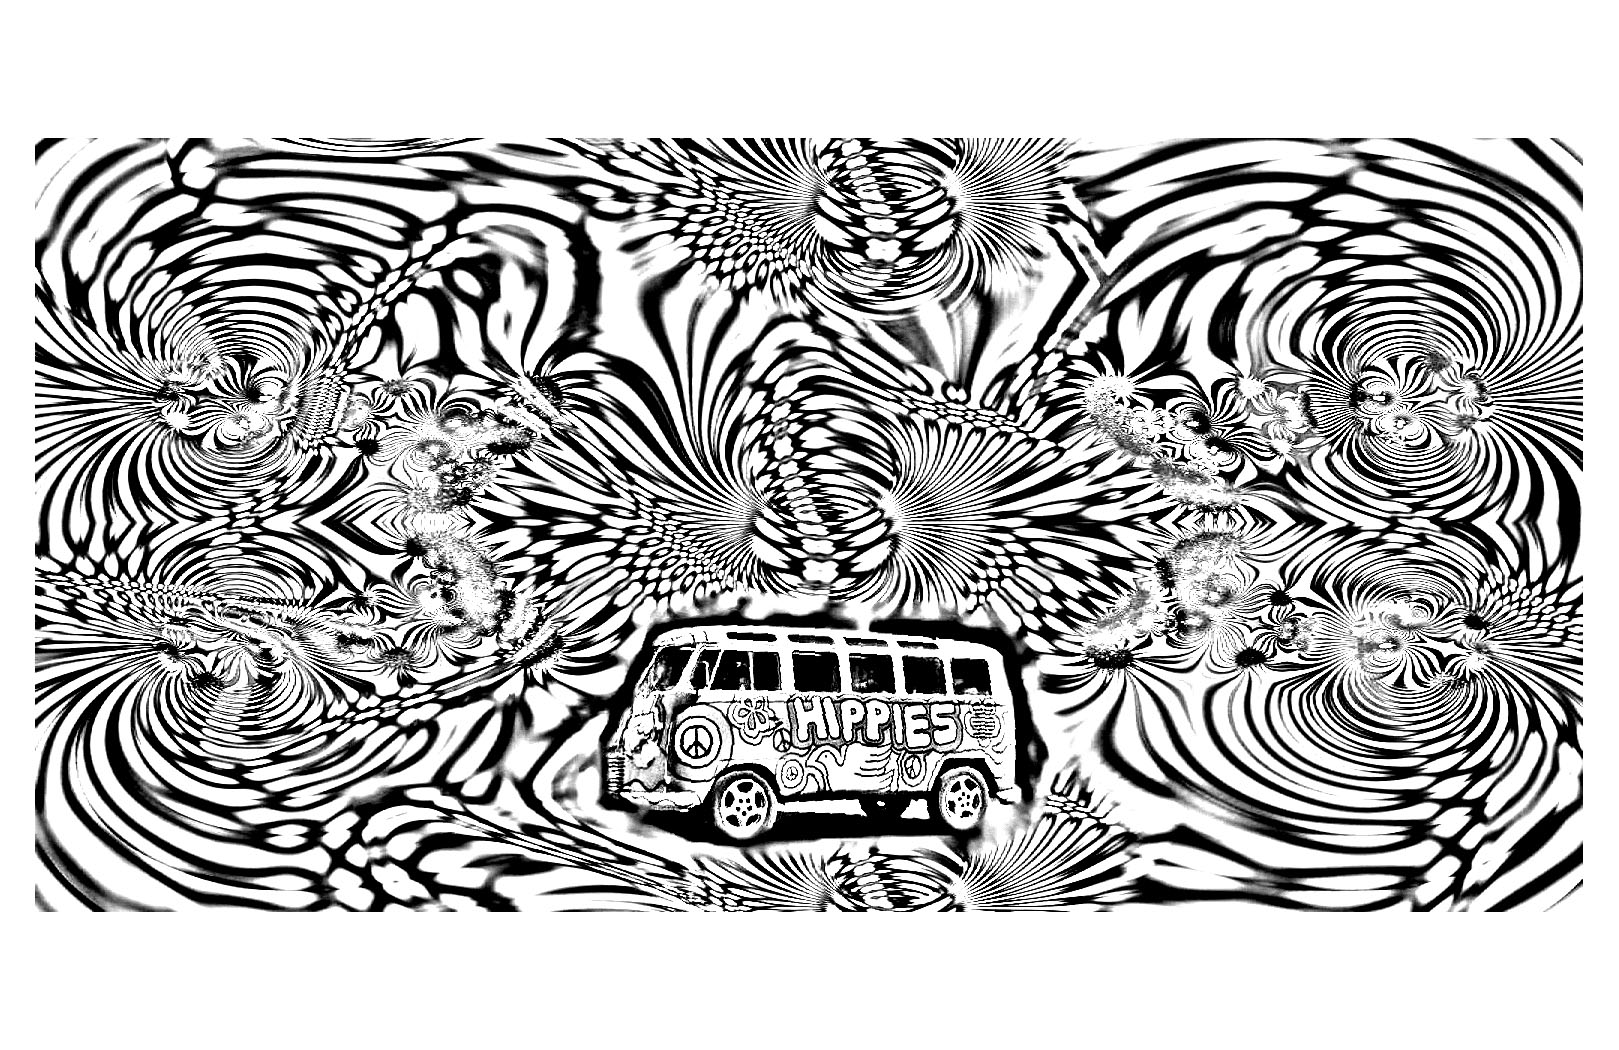 Trippy Printable Coloring Pages - Democraciaejustica